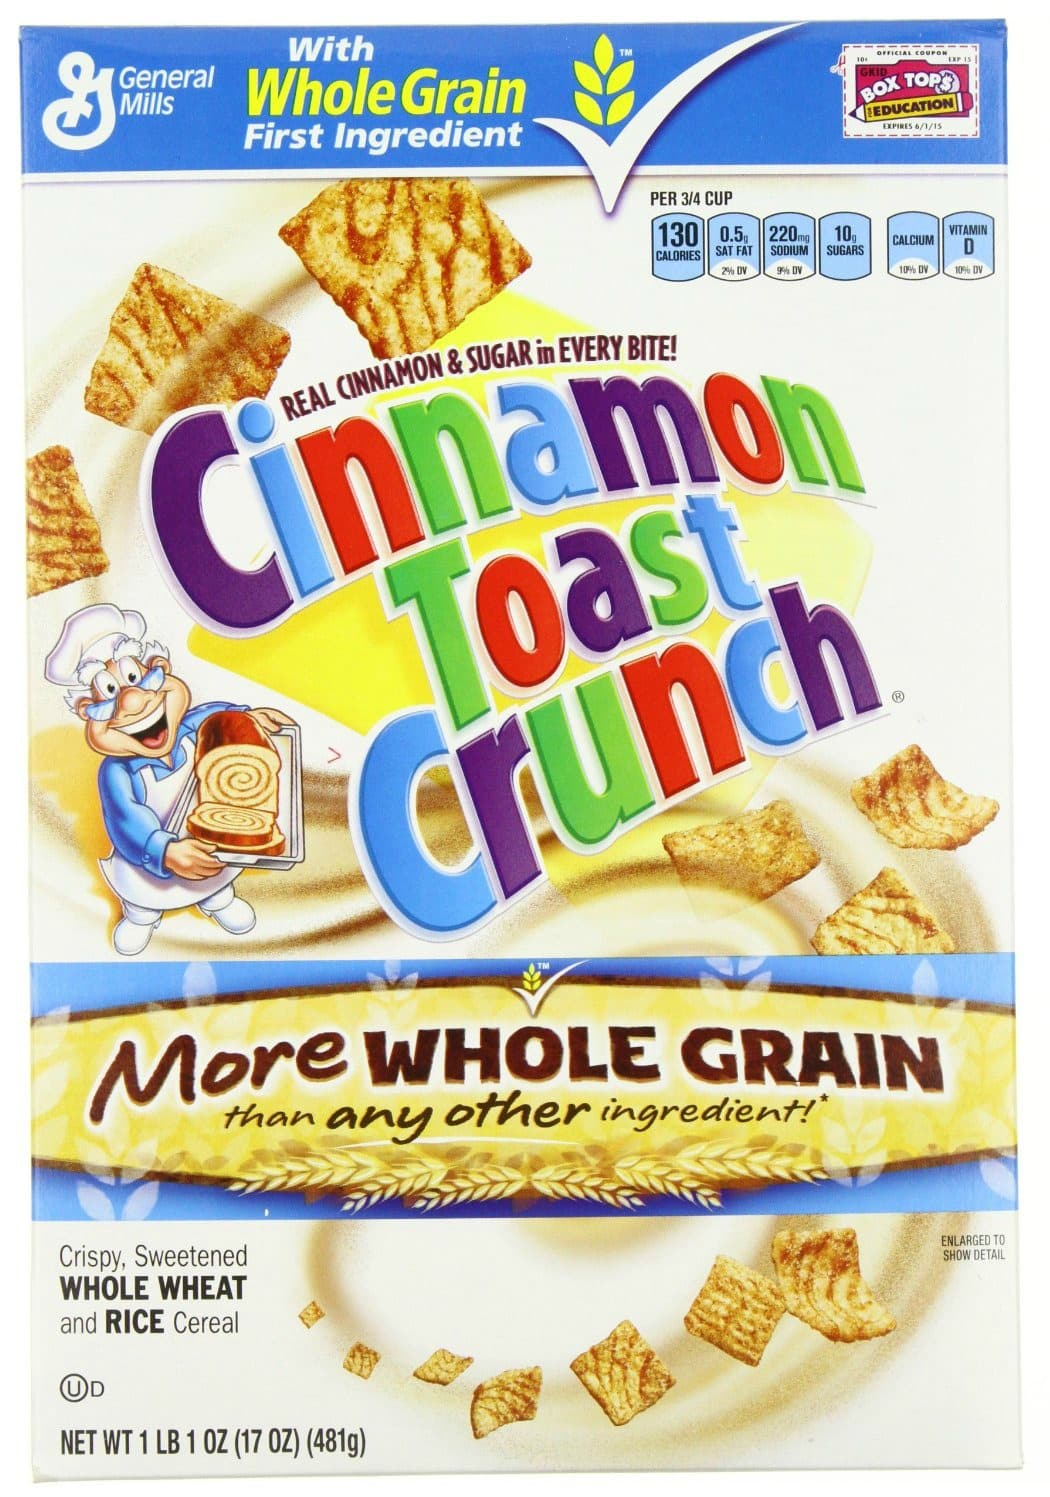 new breakfast coupons  chex  golden grahams  bisquick  and